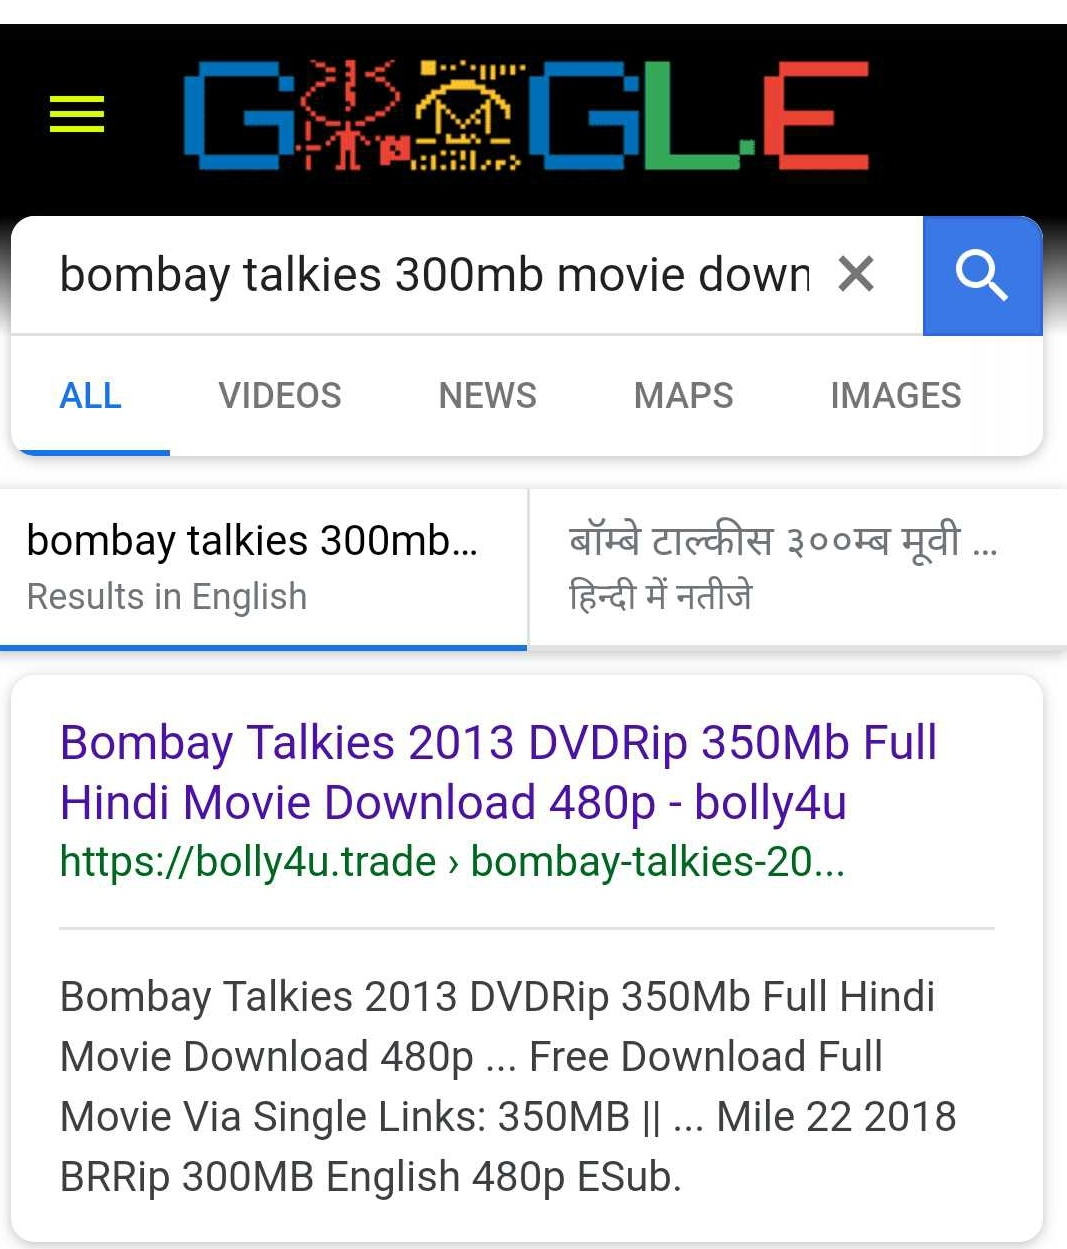 Where can I download Bombay Talkies (2013) in Hindi? - Quora